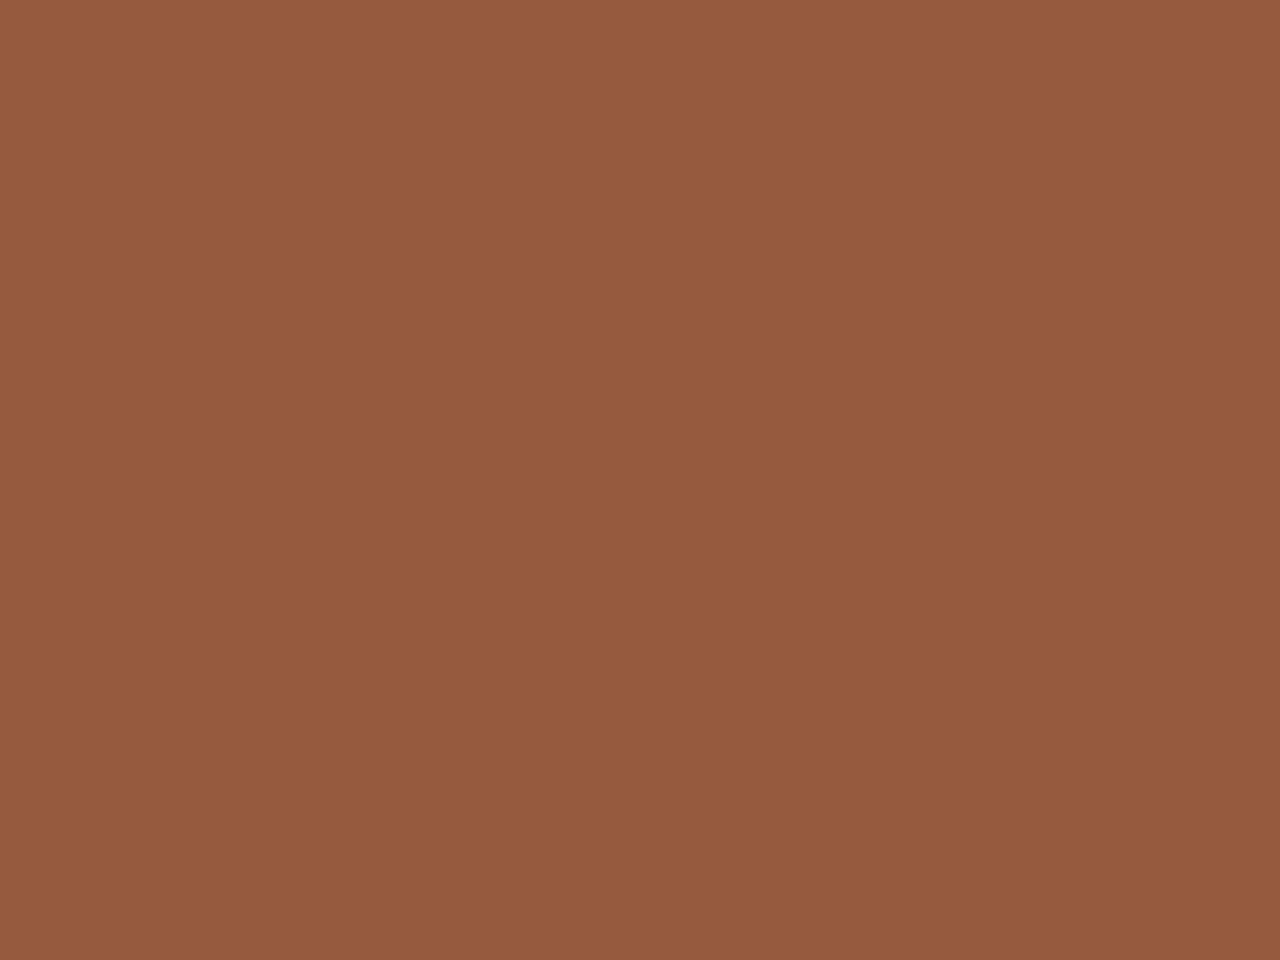 1280x960 Coconut Solid Color Background